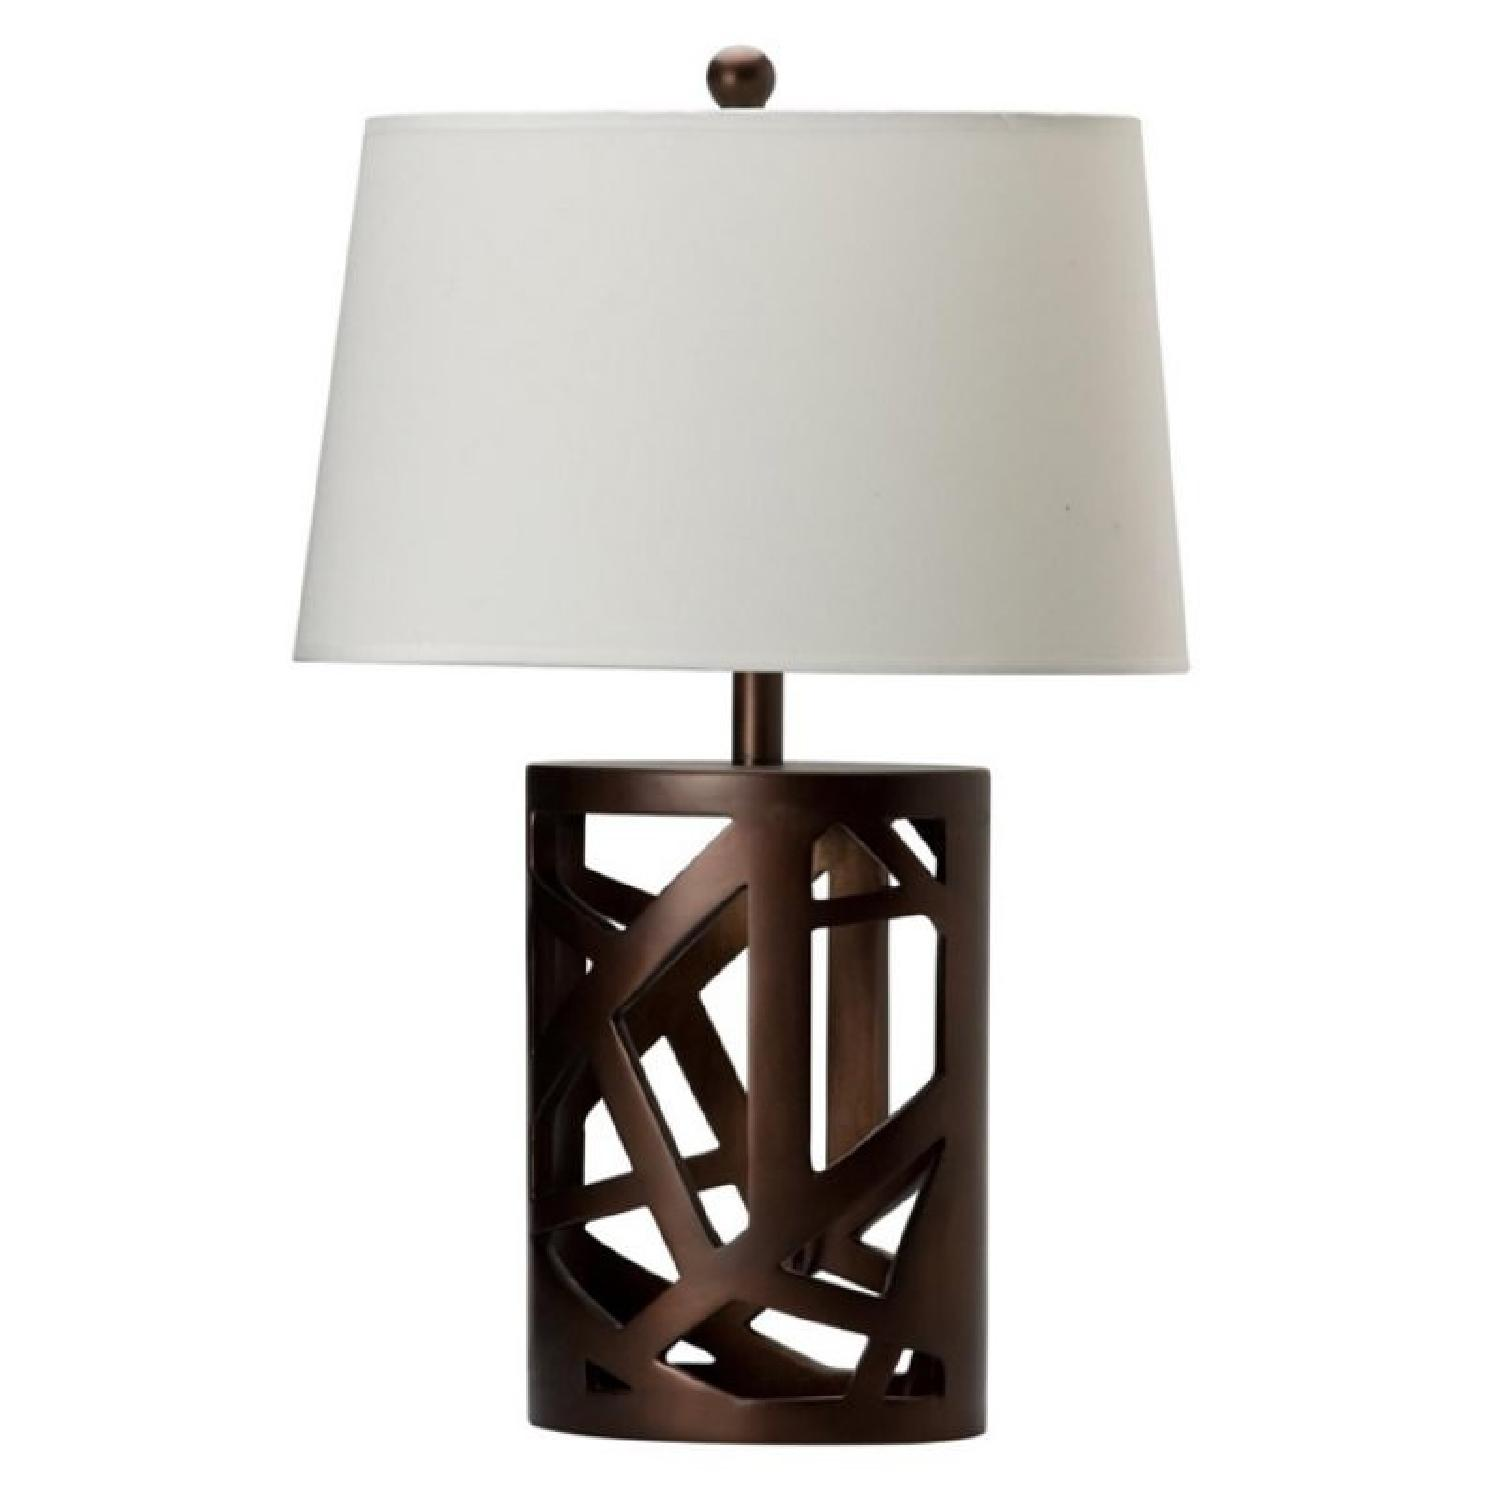 Modern Table Lamp w/ White Tapered Drum Shade & Wood Cut-Out Base - image-0